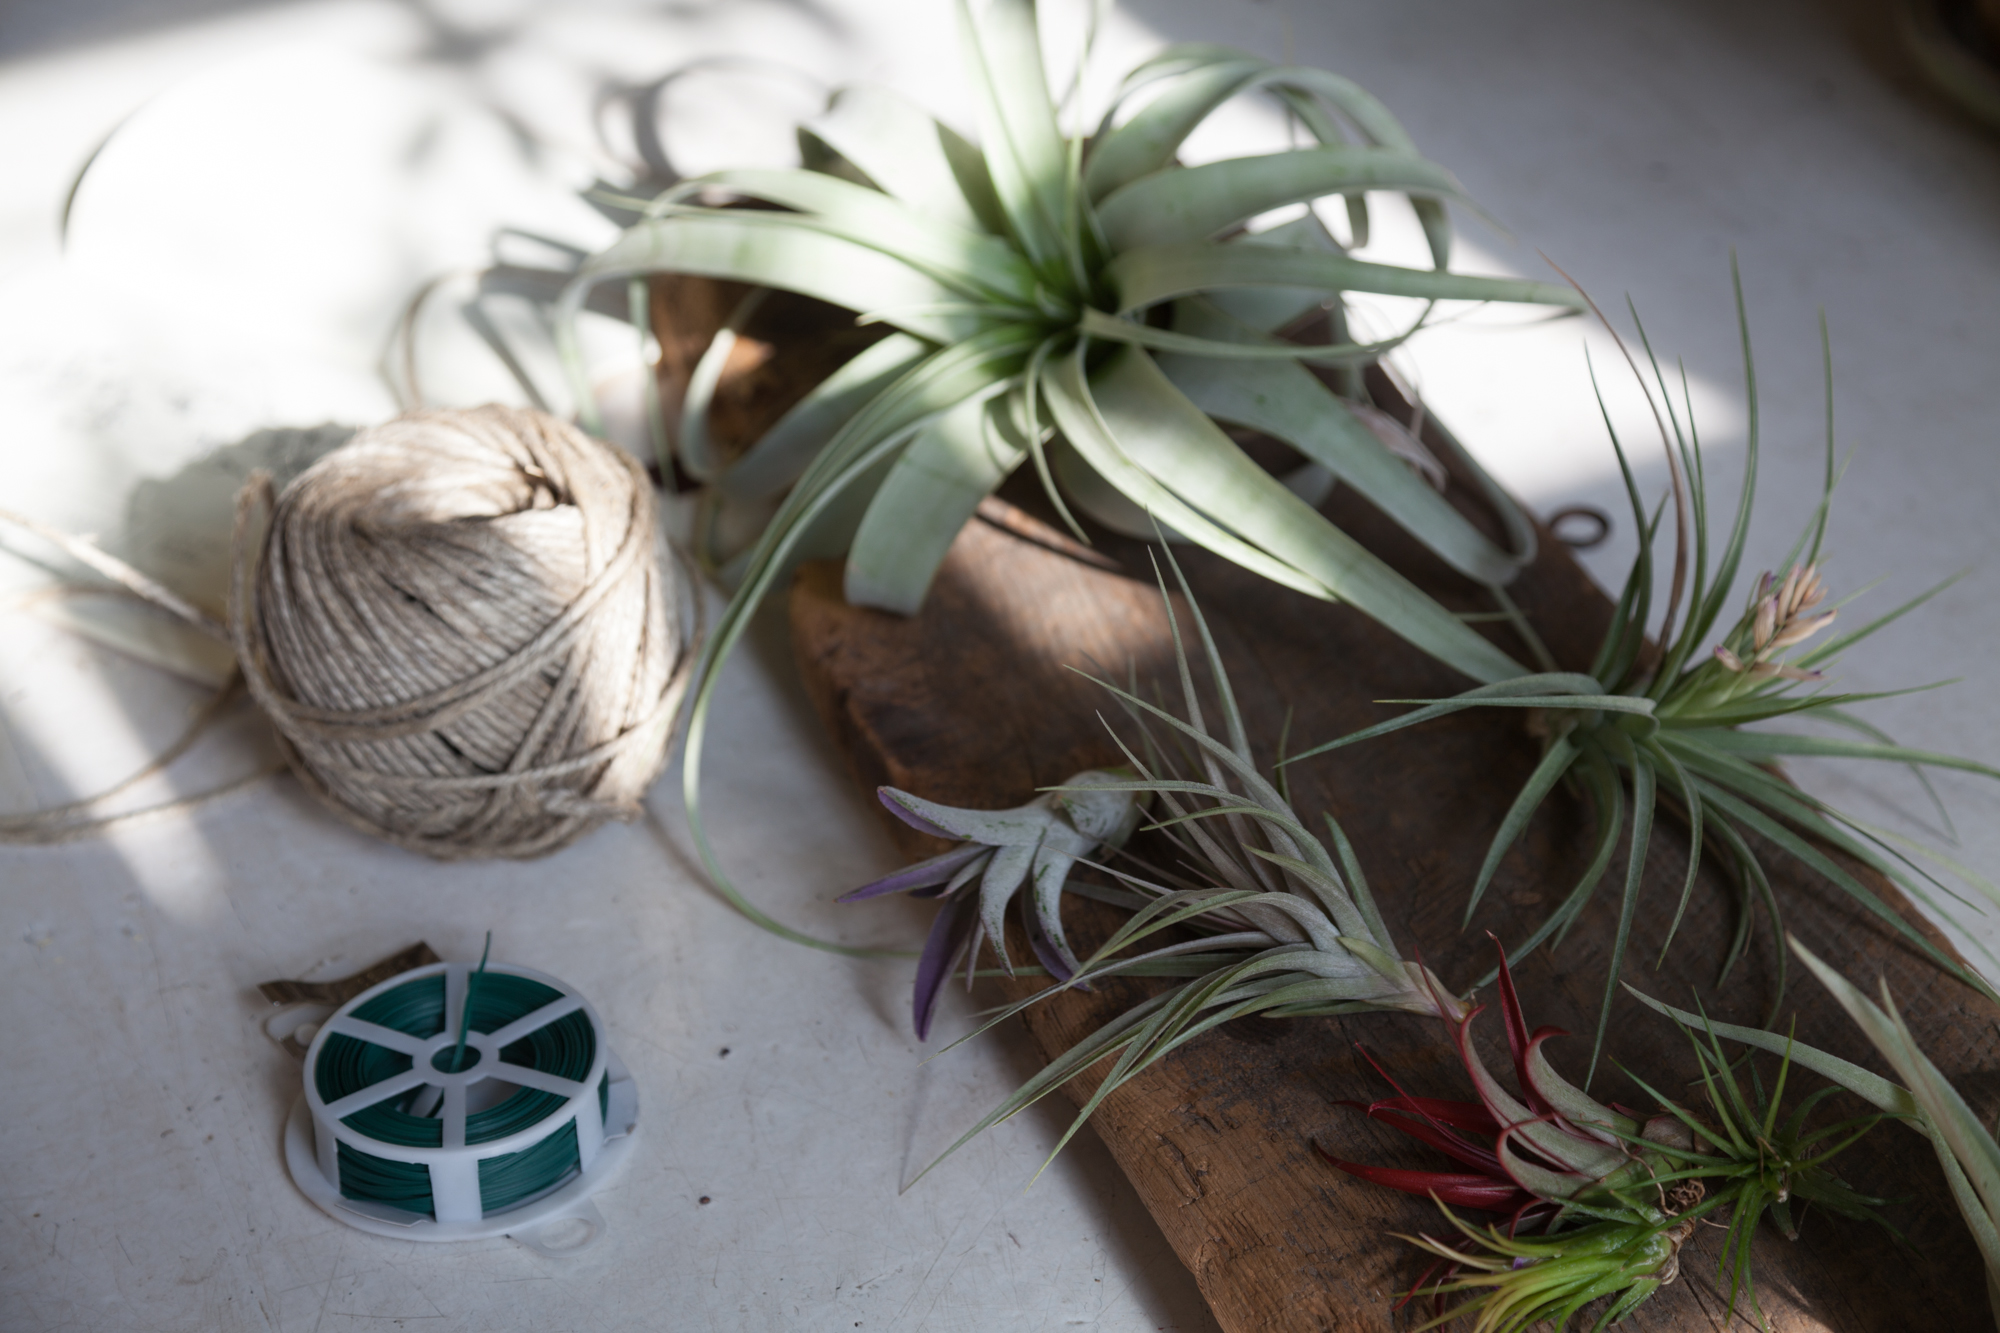 Just some of the materials that I used to create this simple, DIY air plant sculpture: Twine, wood, and air plants—of course!